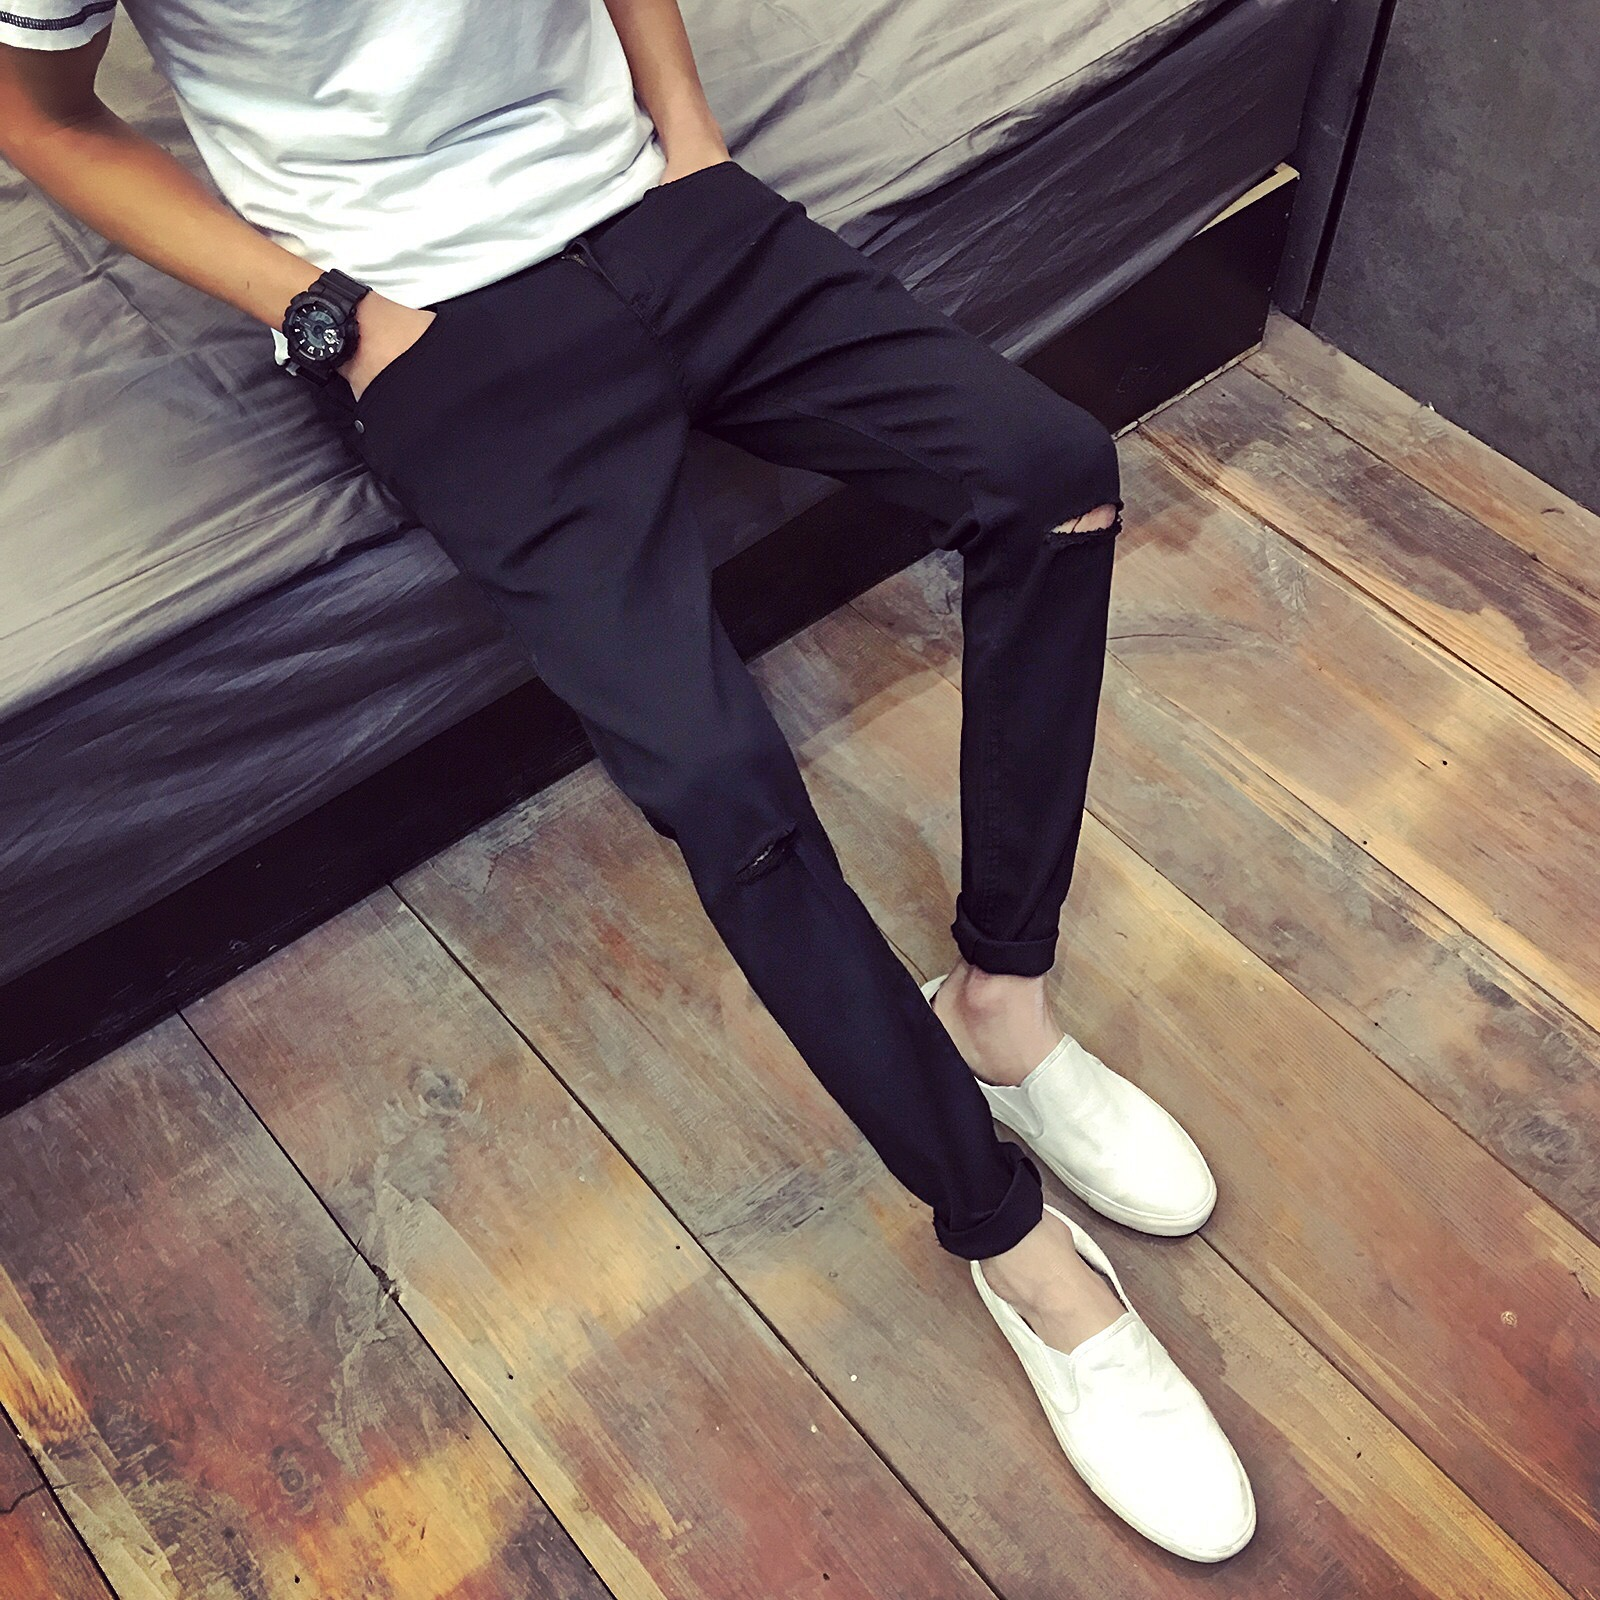 Jeans Men's Skinny With Holes Korean-style Slim Fit Capri MEN'S Casual Pants Trend Big Brand 2016 Spring New Style